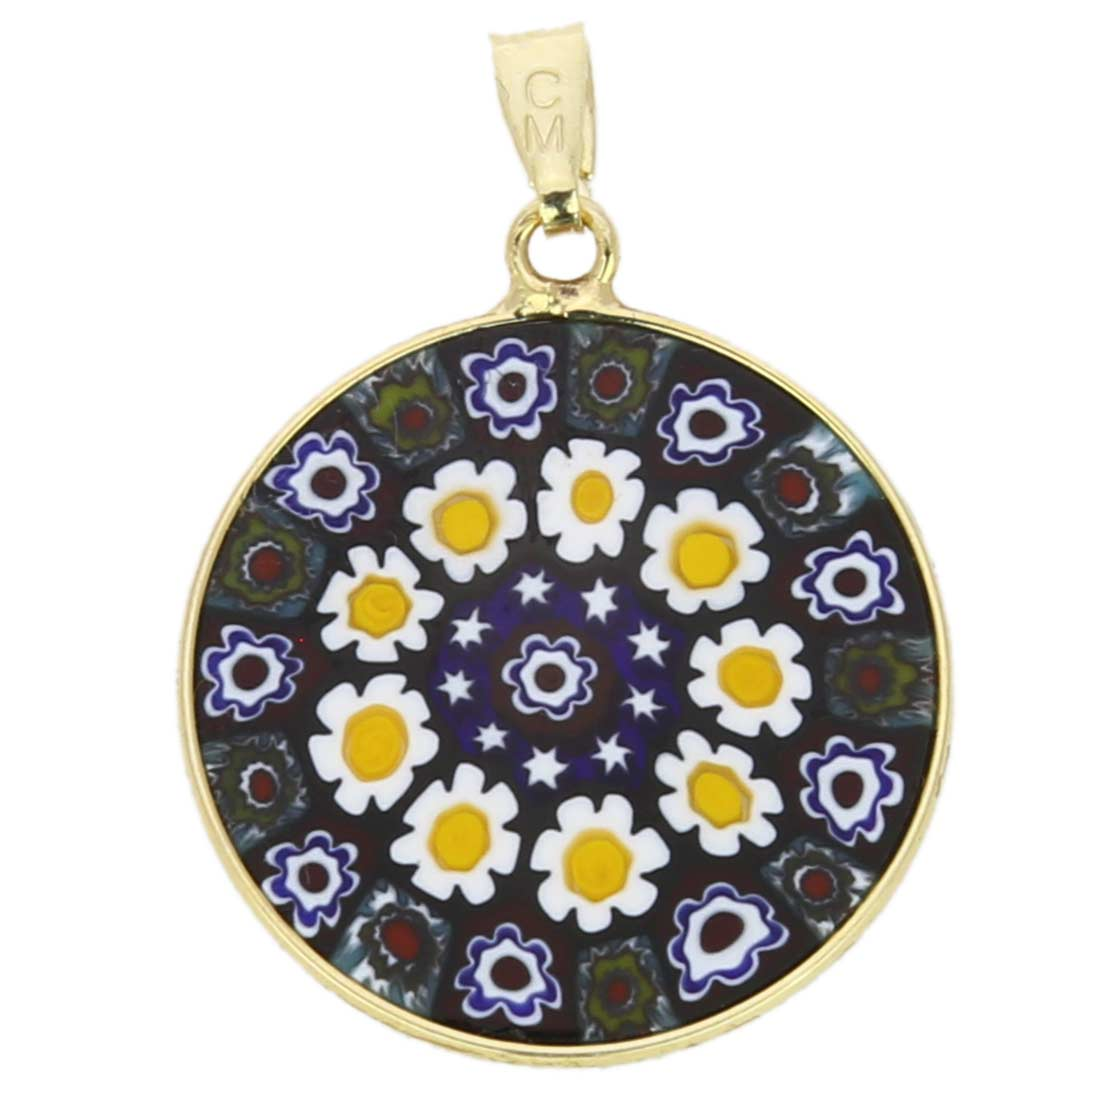 Medium Millefiori Pendant in Gold-Plated Frame 23mm